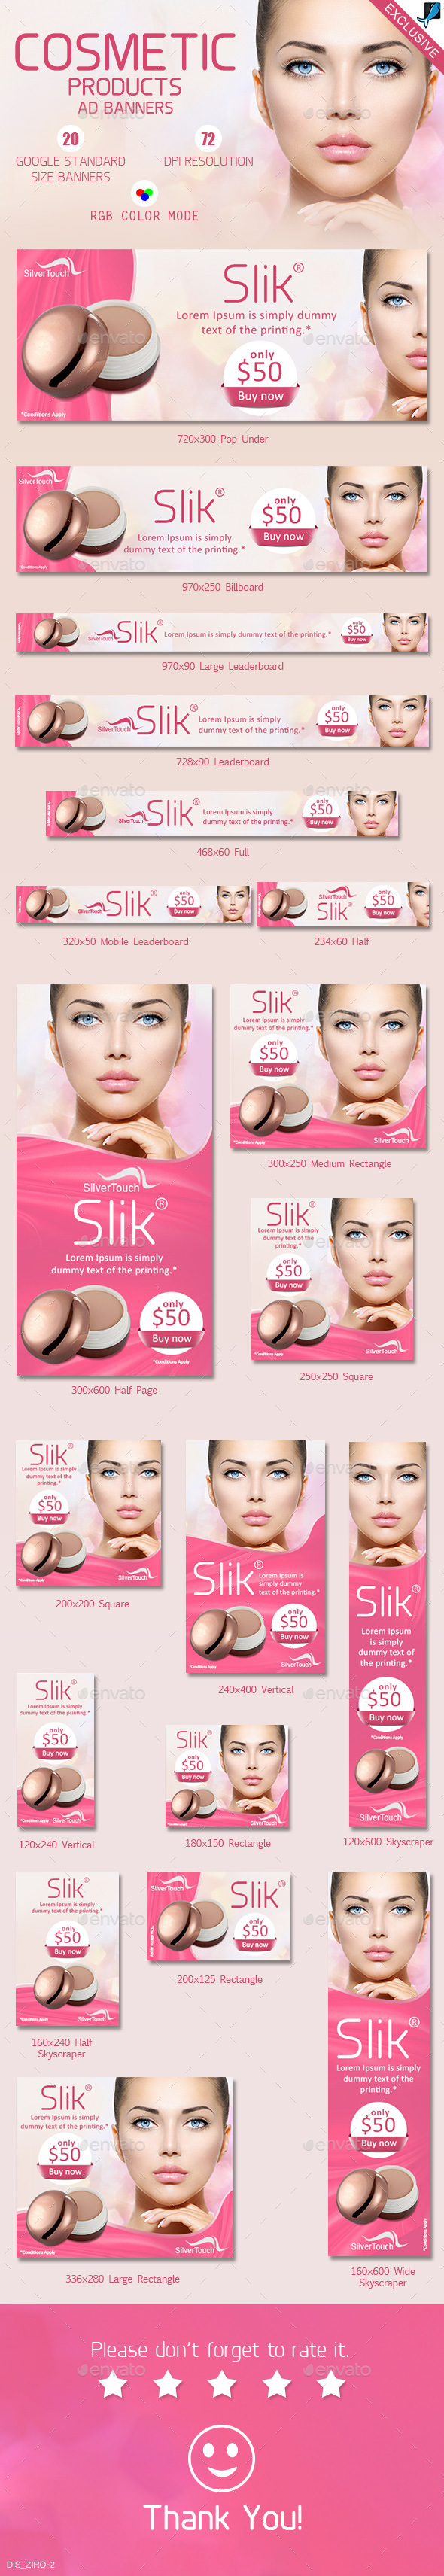 Cosmetic Product  Ad Banners - Banners & Ads Web Elements